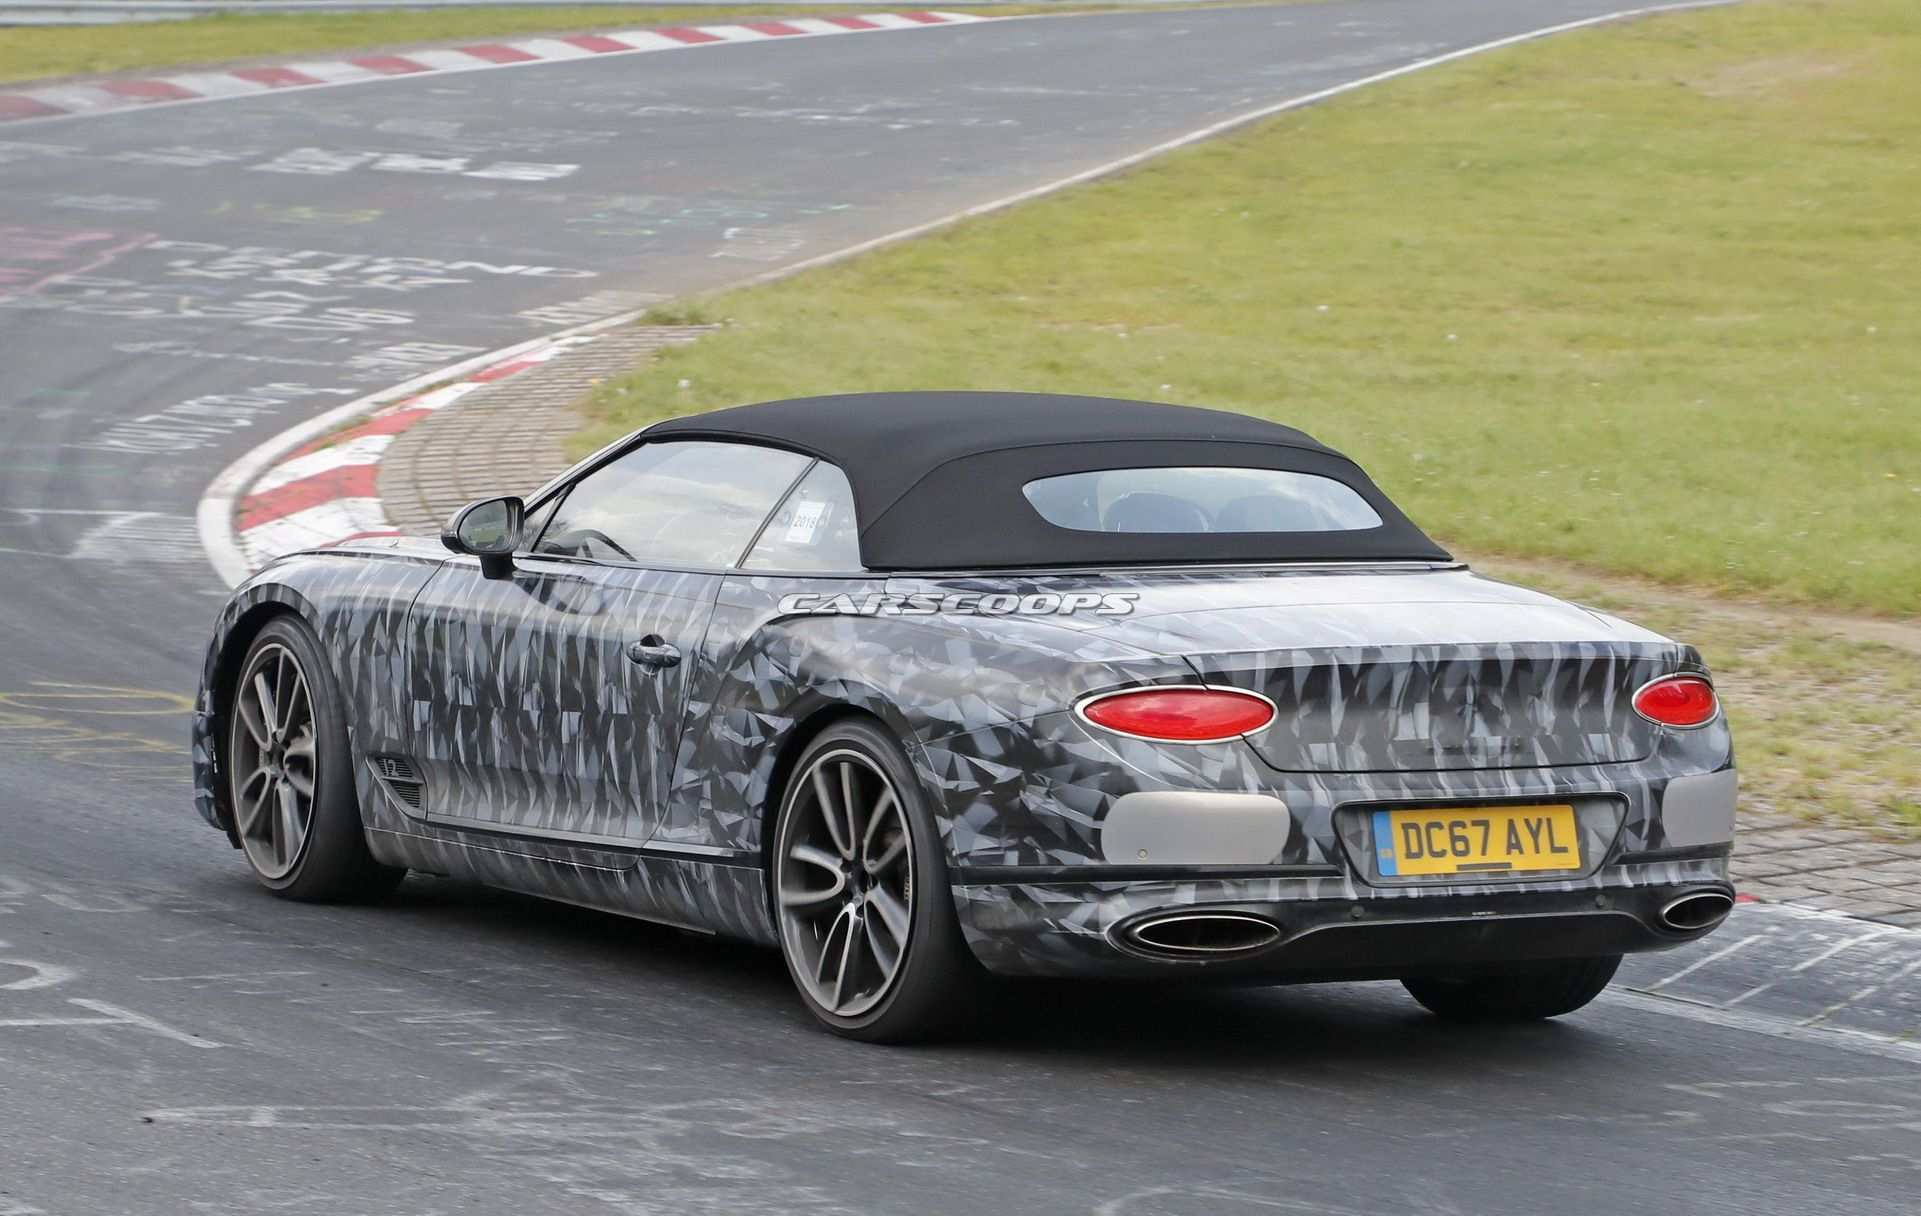 98 Concept of 2019 Bentley Continental Gt V8 First Drive by 2019 Bentley Continental Gt V8